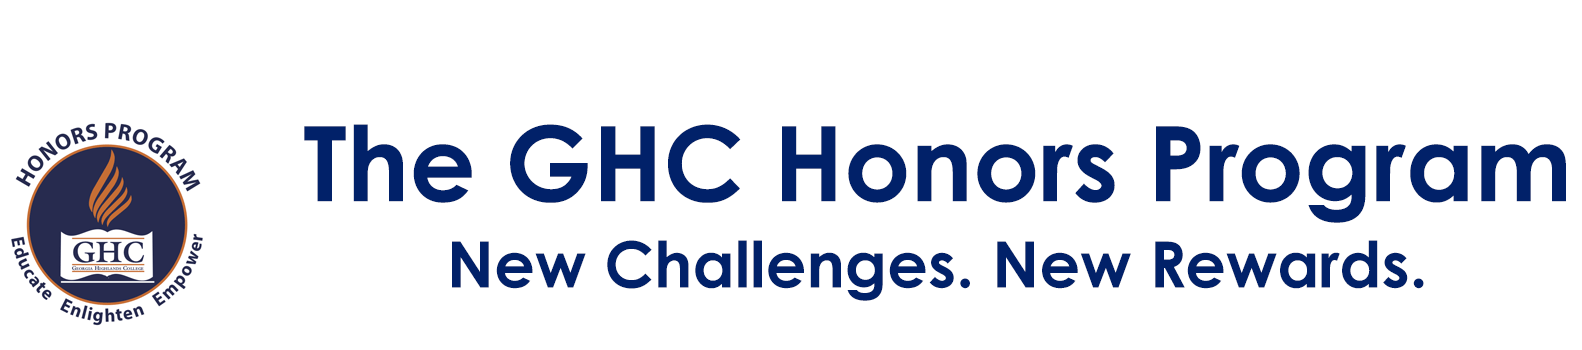 The GHC Honors Program. New Challenges. New Rewards.